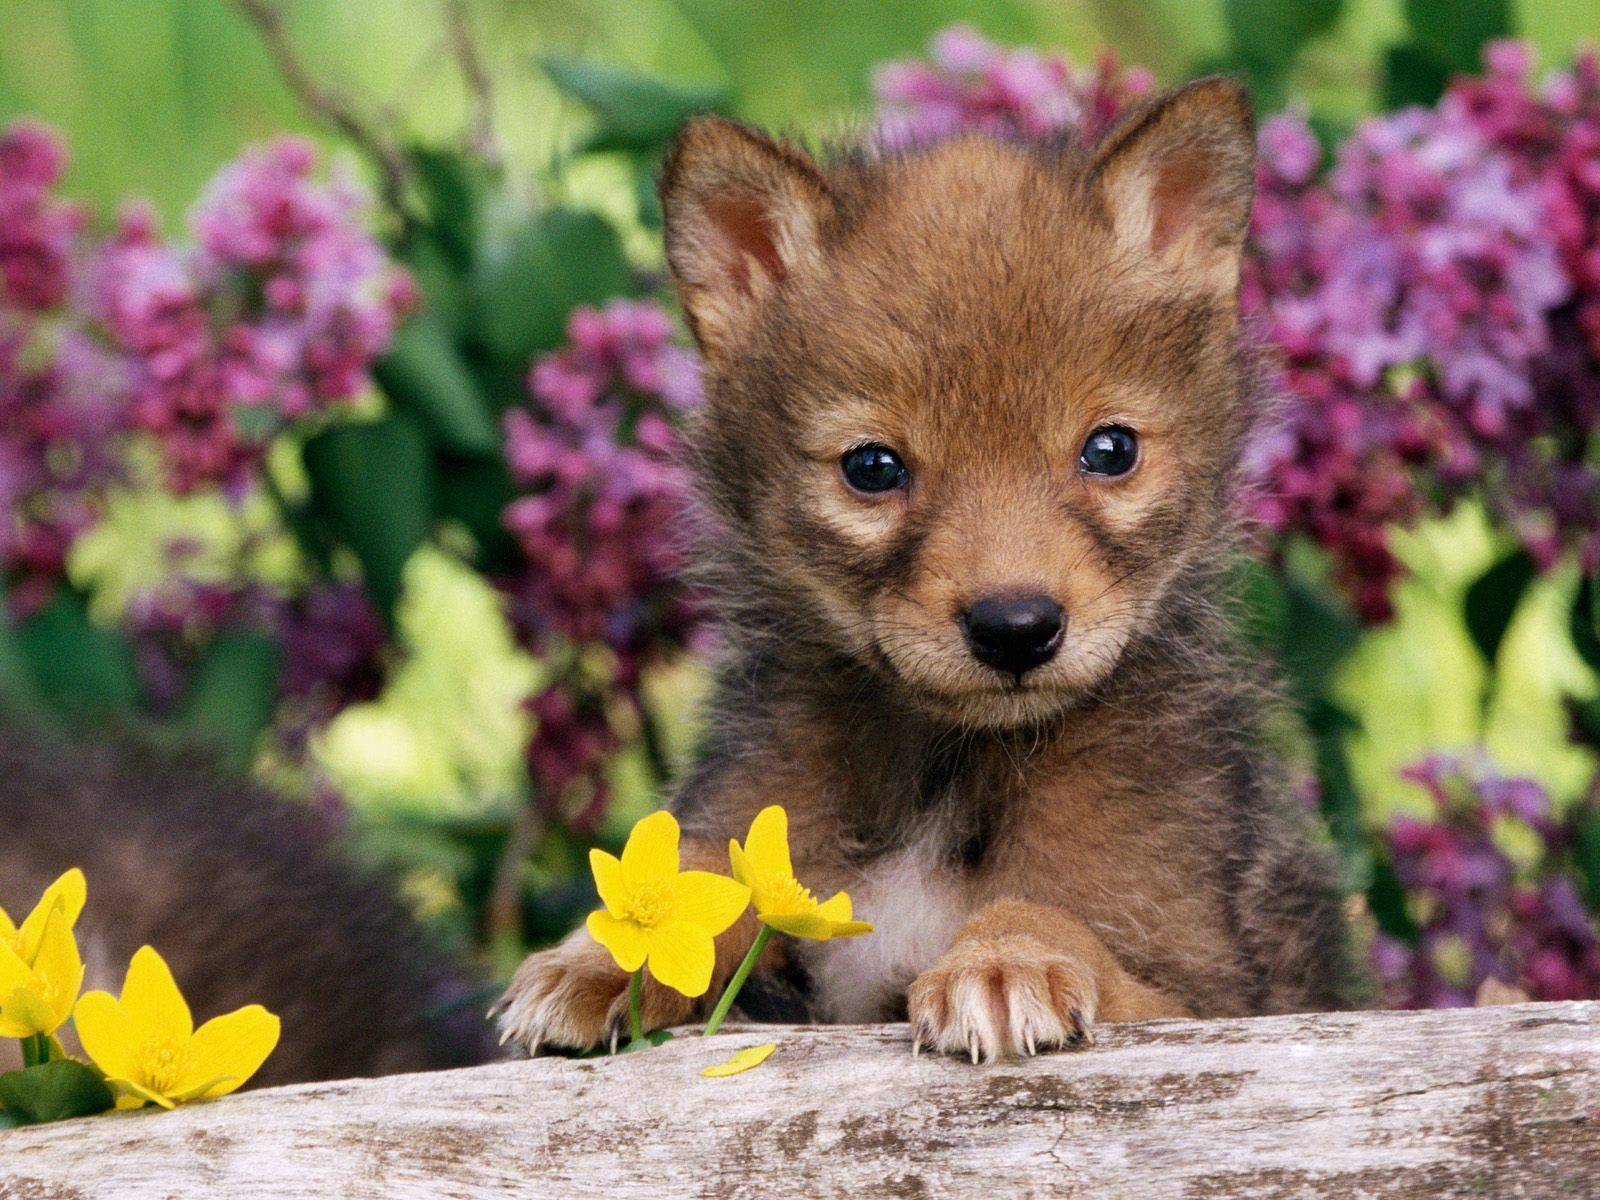 80168 download wallpaper Animals, Puppy, Grass, Wolf, Young, Joey, Dog screensavers and pictures for free